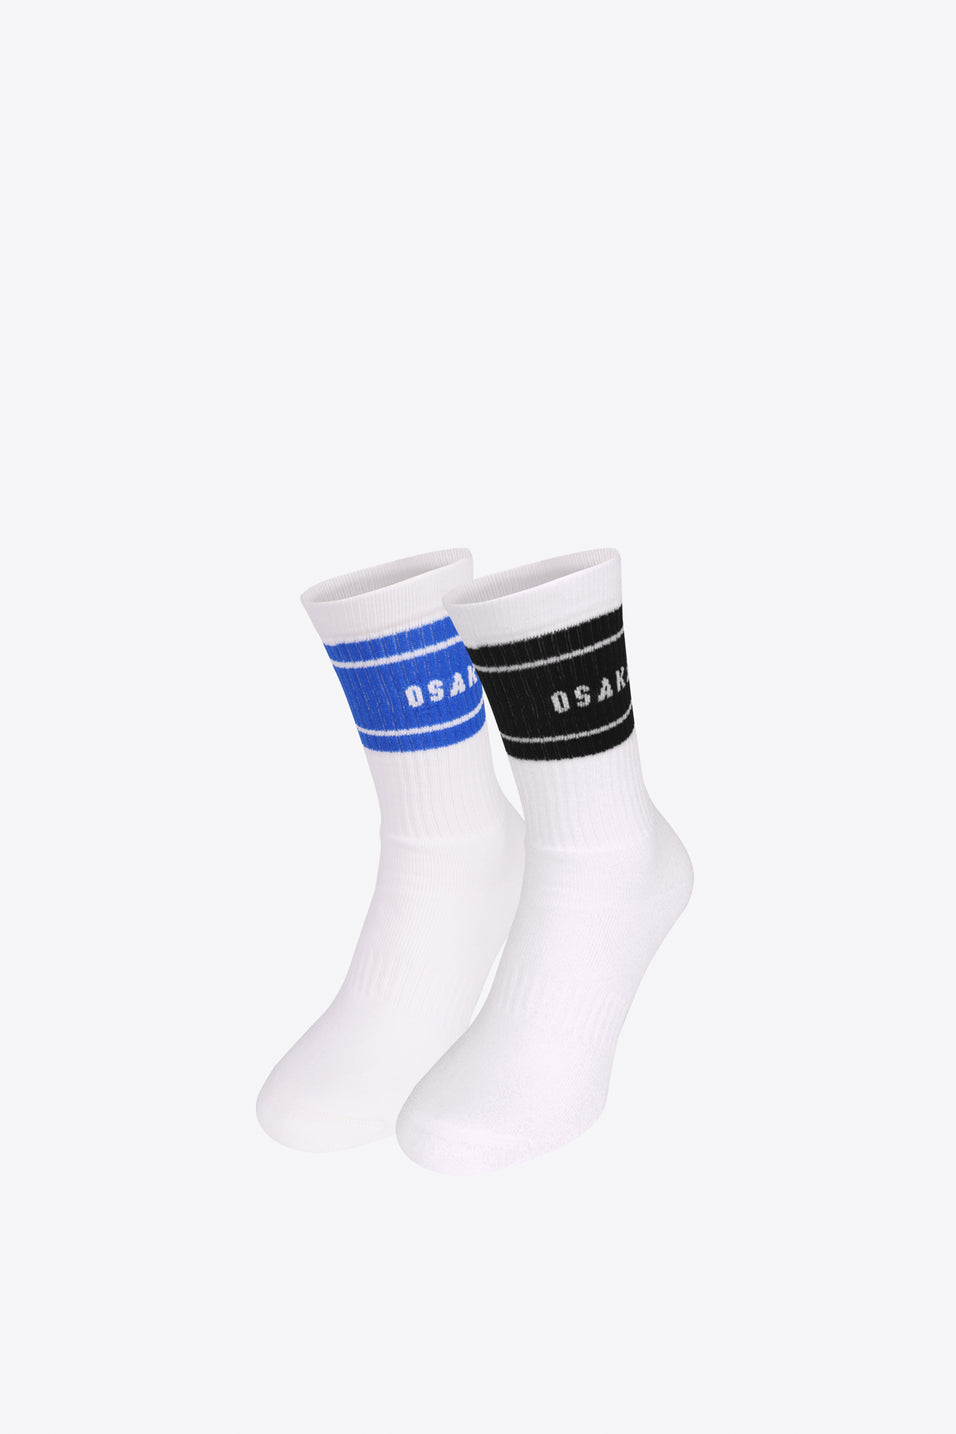 Colourway Socks Duo Pack - Black / Royal Blue